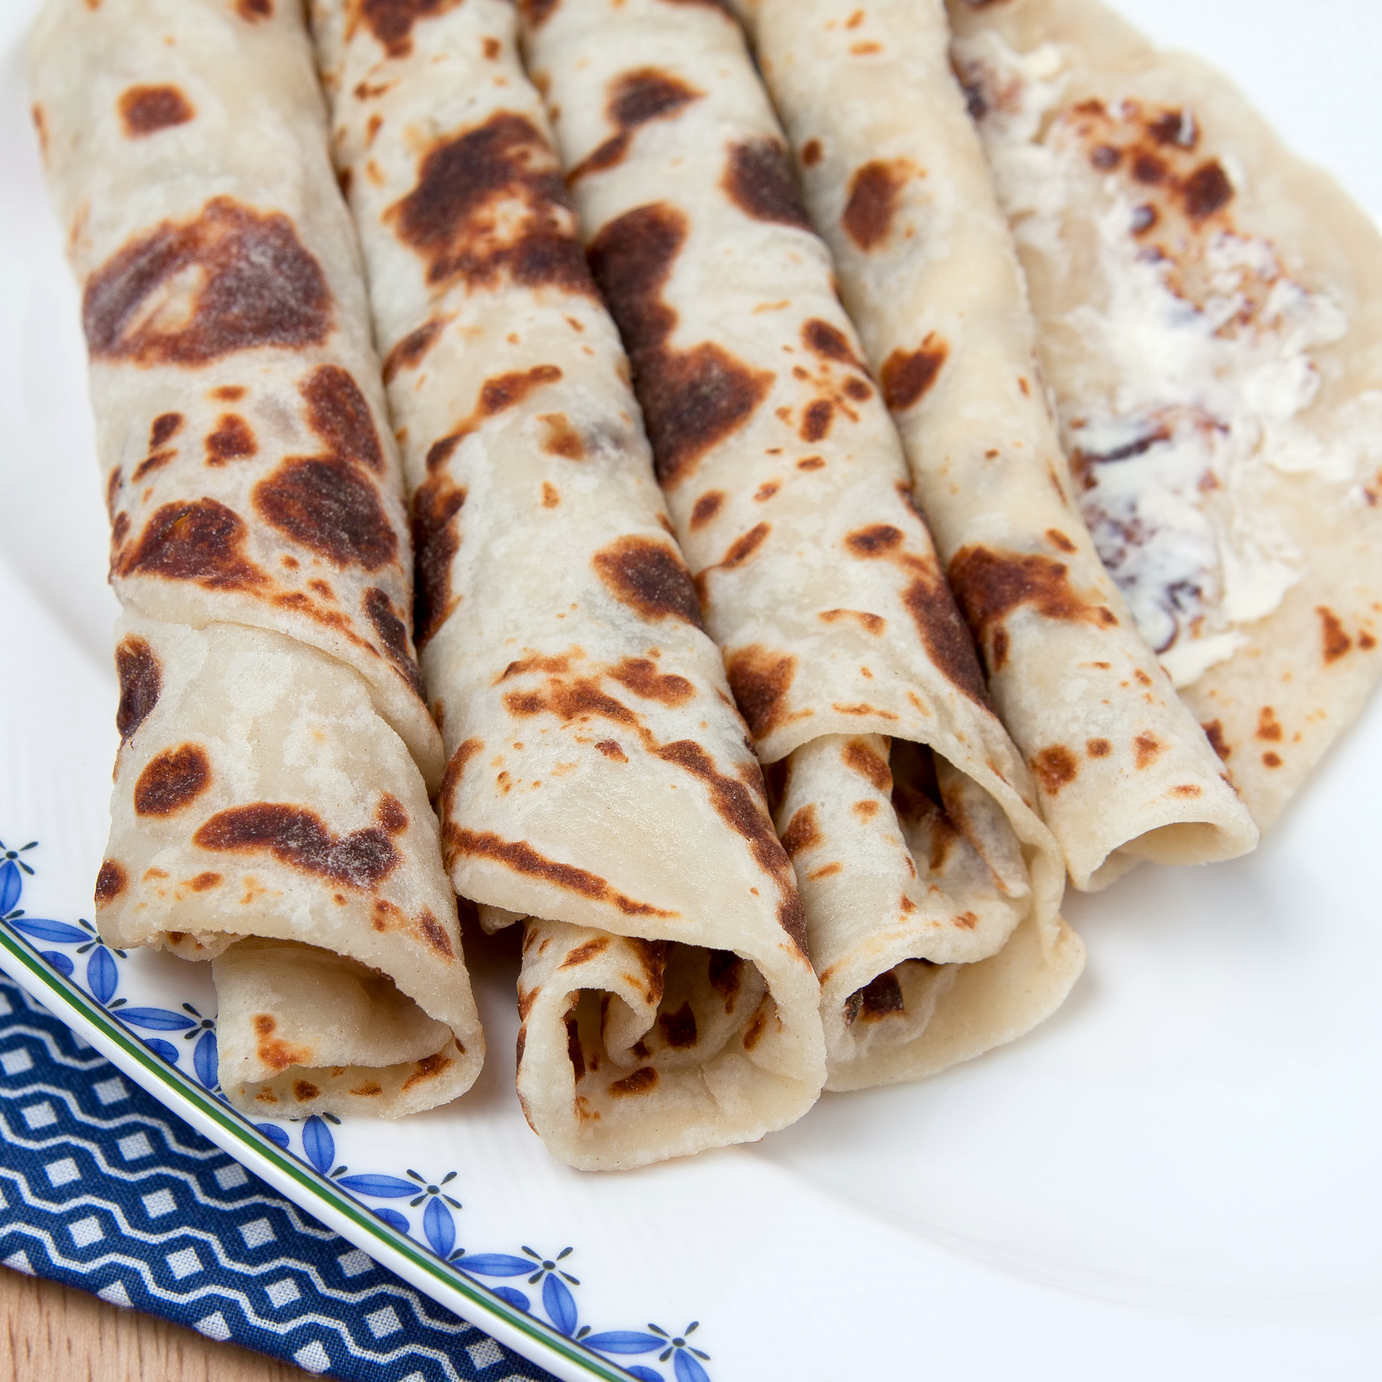 Several pieces of rolled lefse on a plate